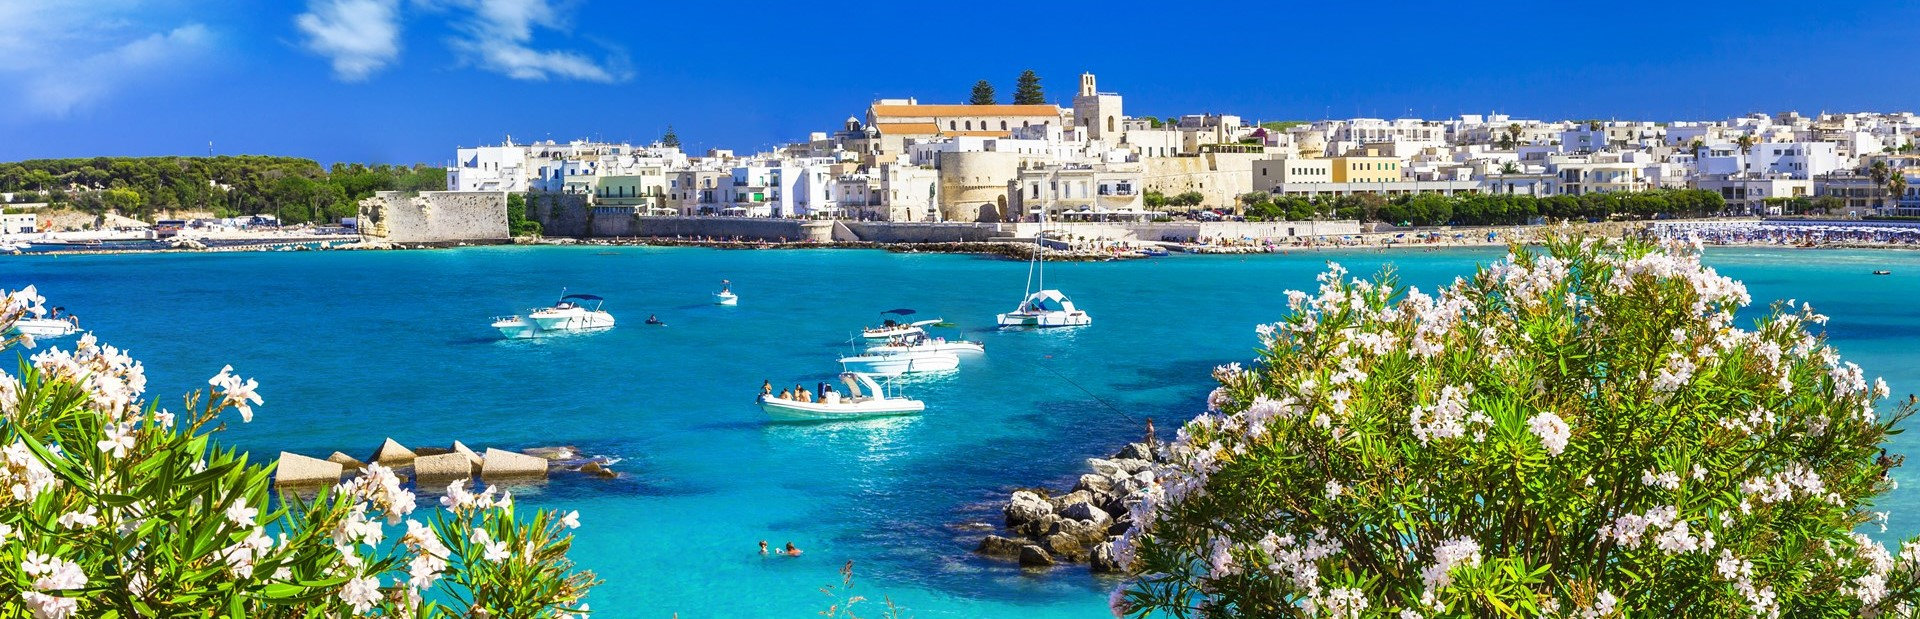 sea-view-otranto-puglia-italy